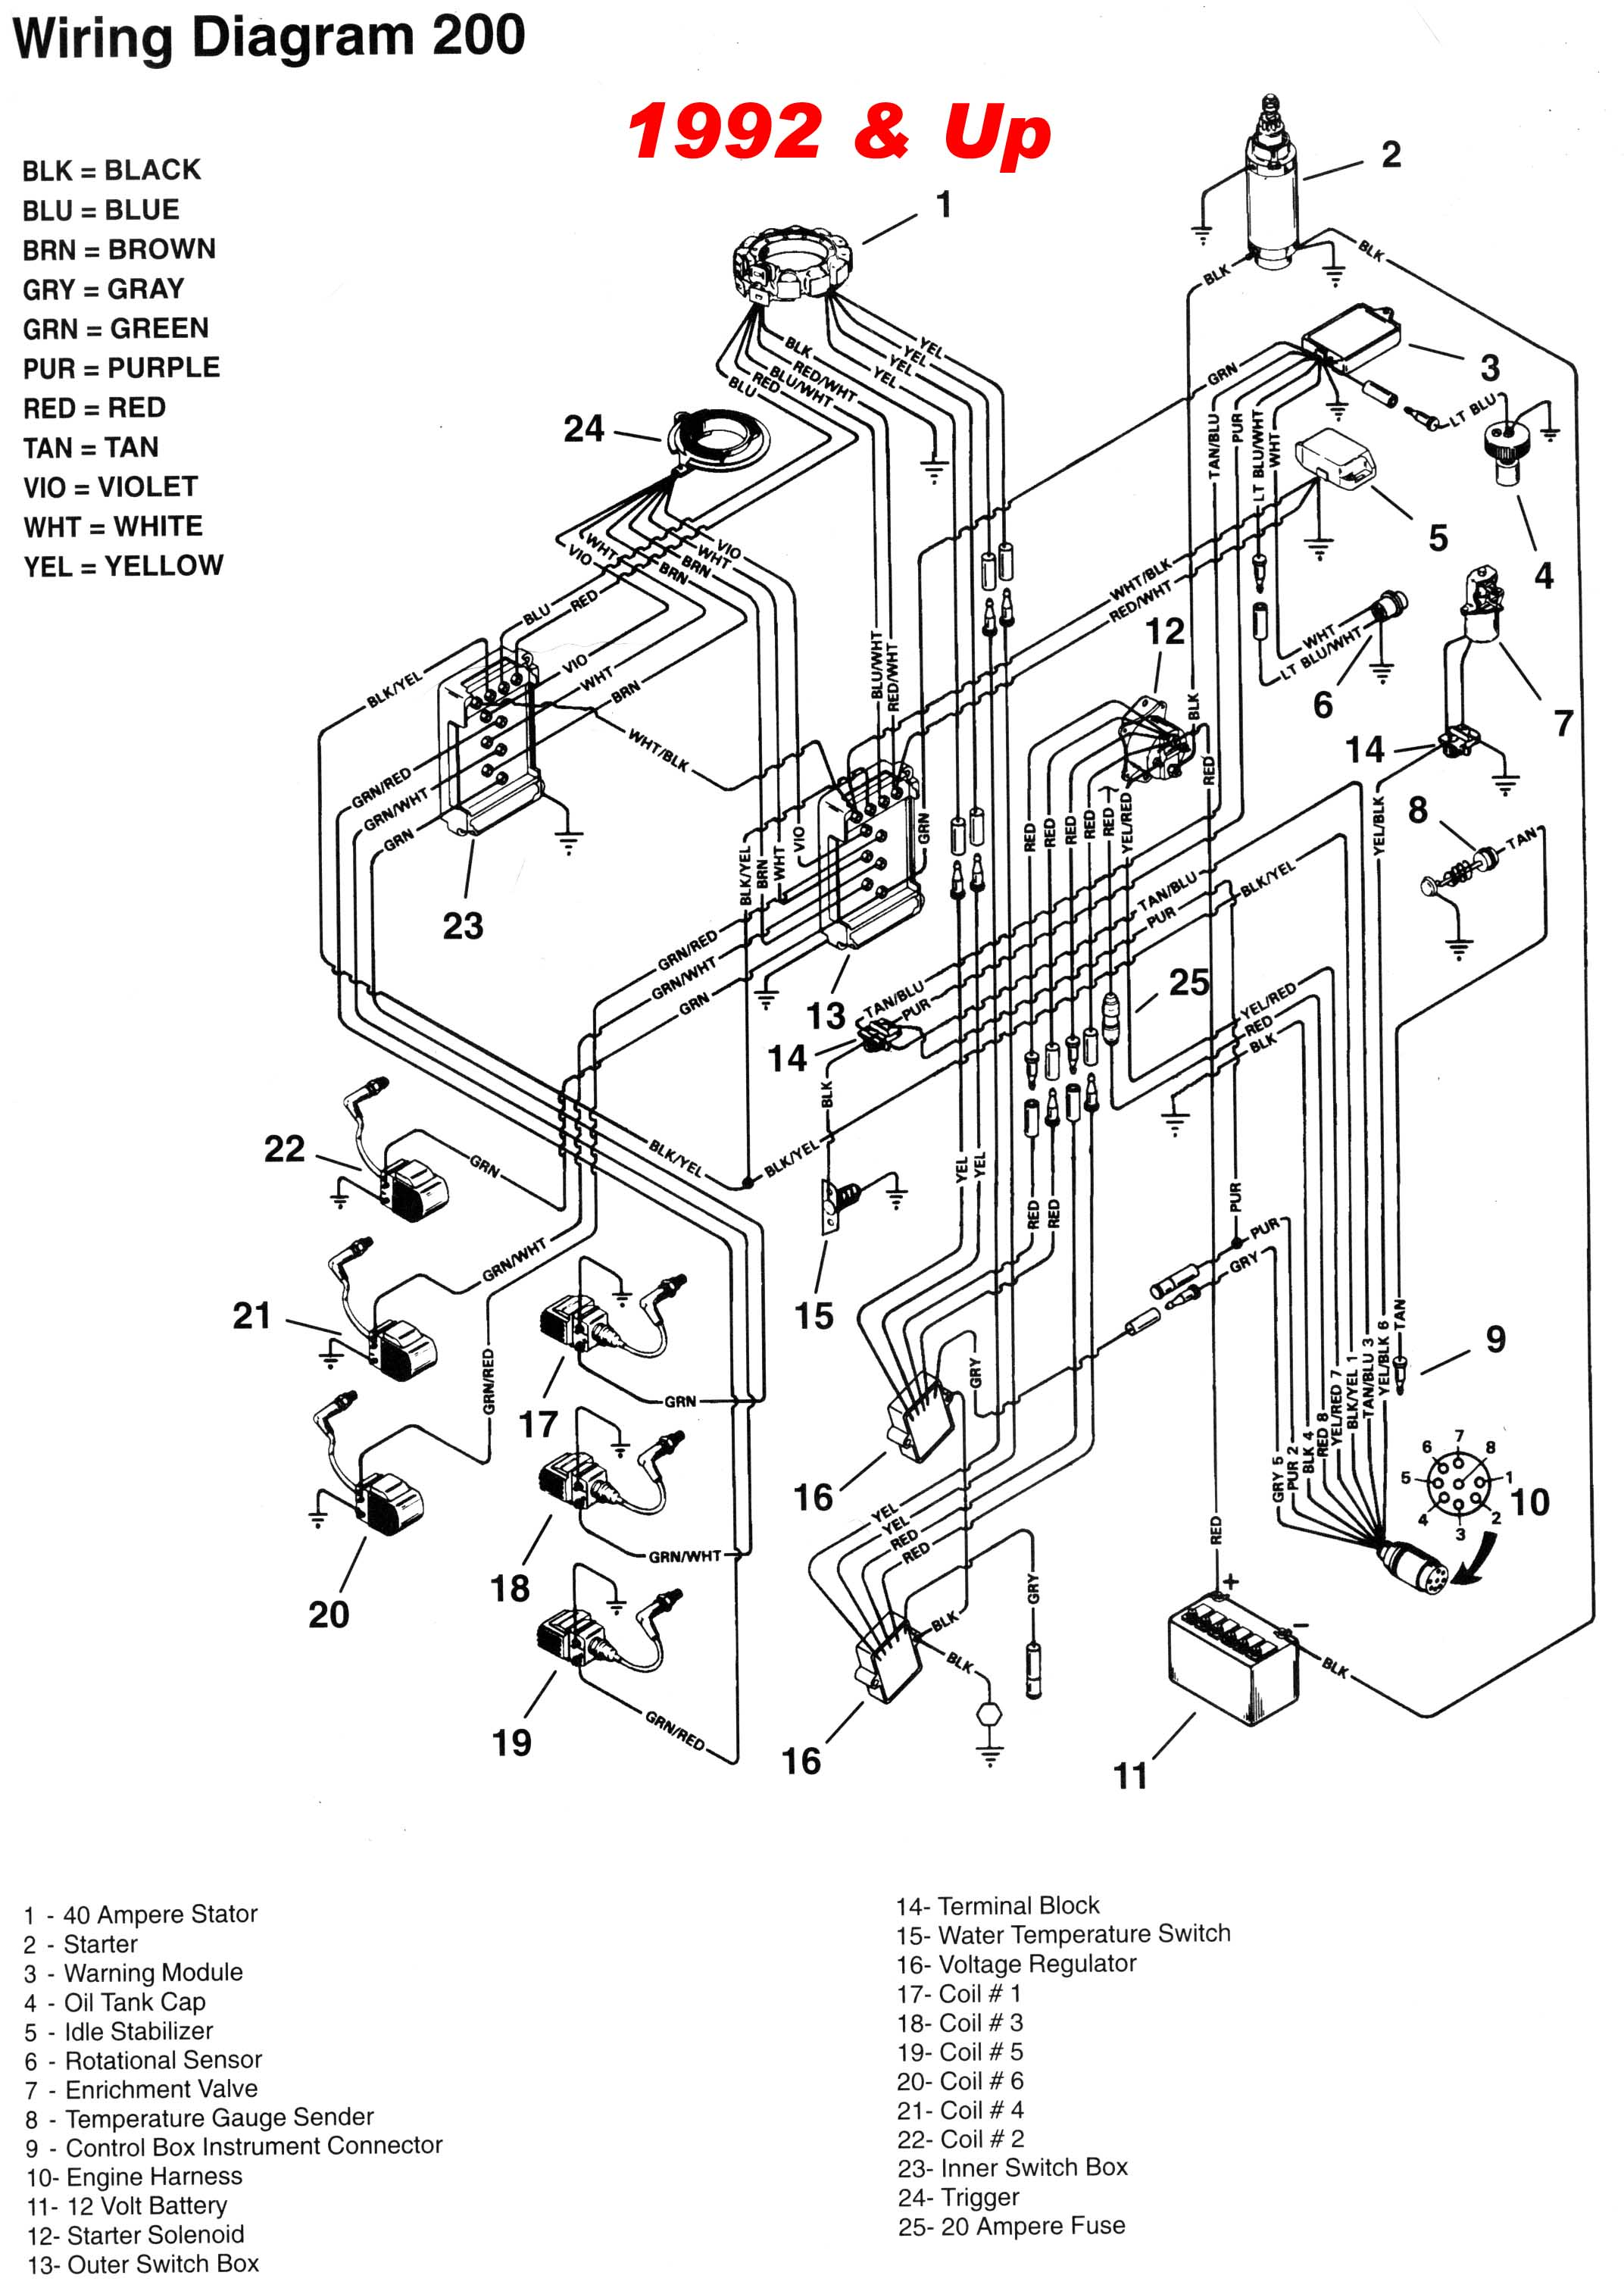 mercury_92up_200_wiring bigfoot wiring diagram mercury 60 hp bigfoot \u2022 wiring diagrams j 40 hp mercury wiring harness schematic at nearapp.co